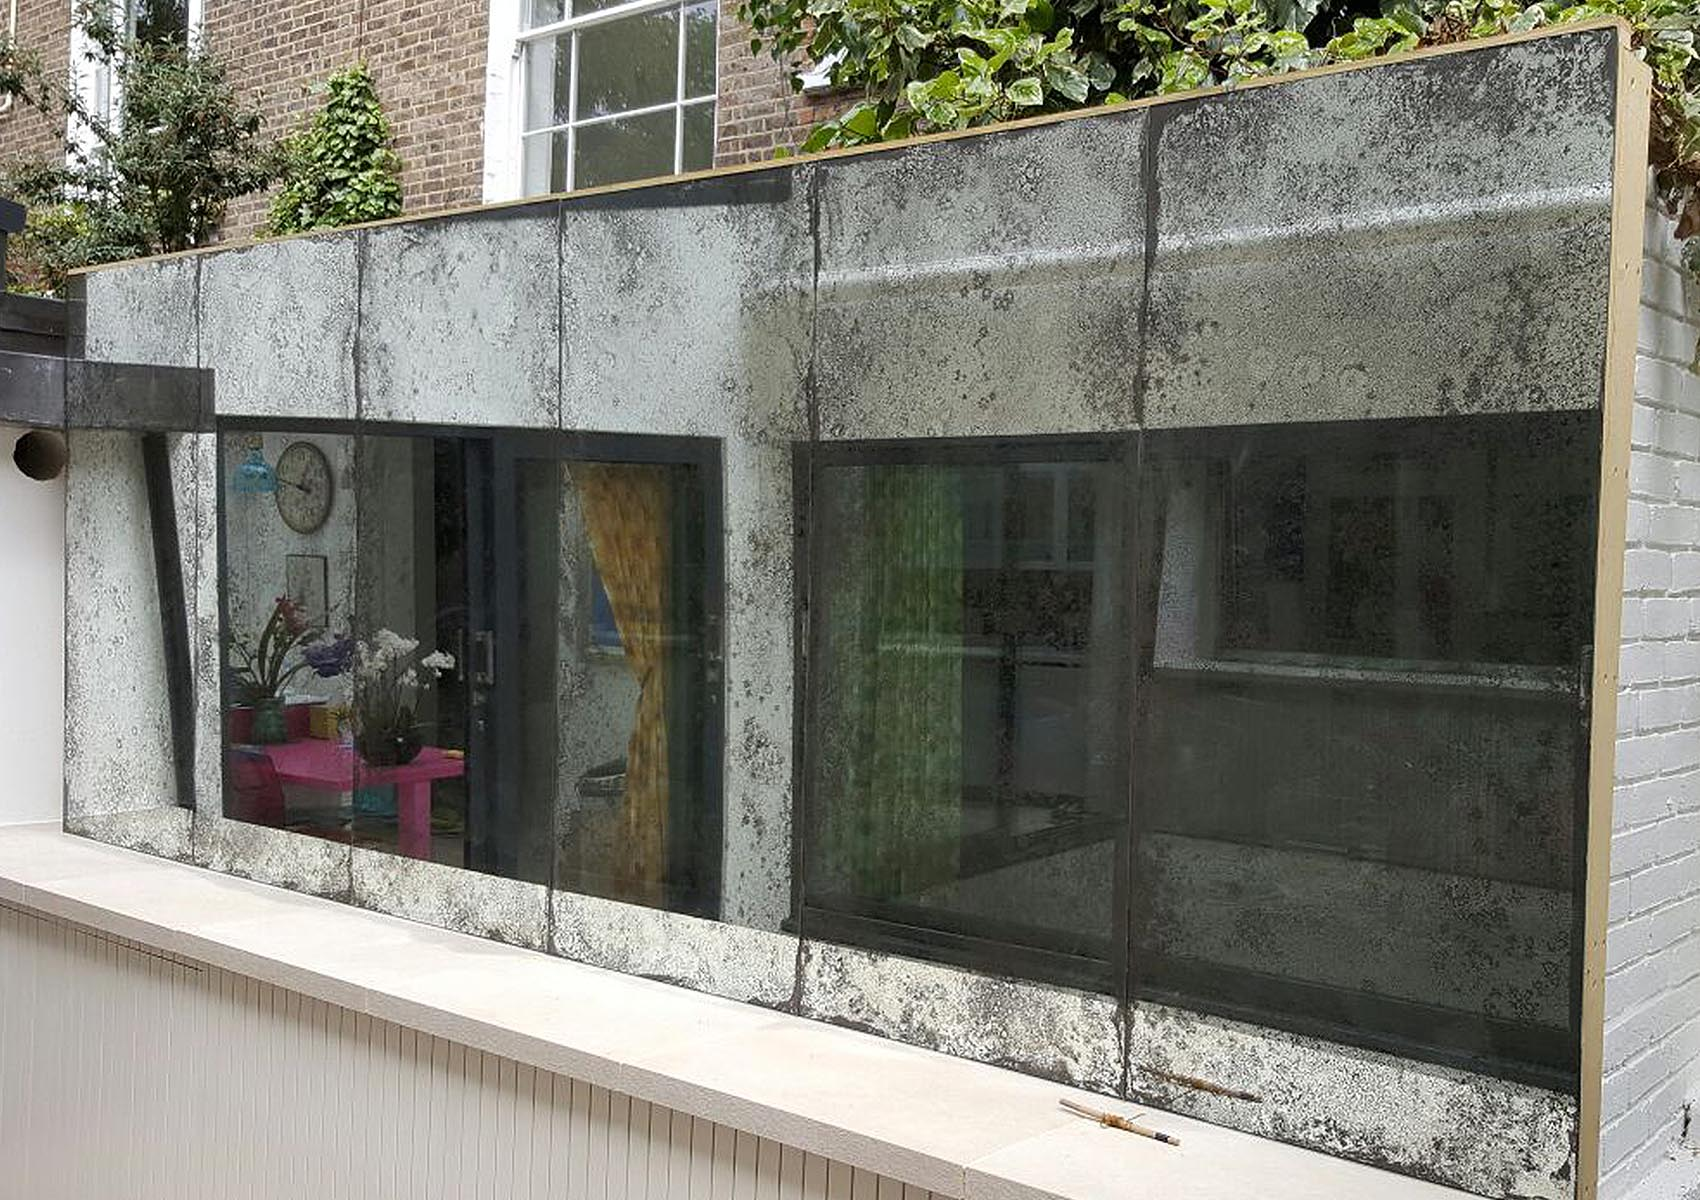 exterior mirror artwork